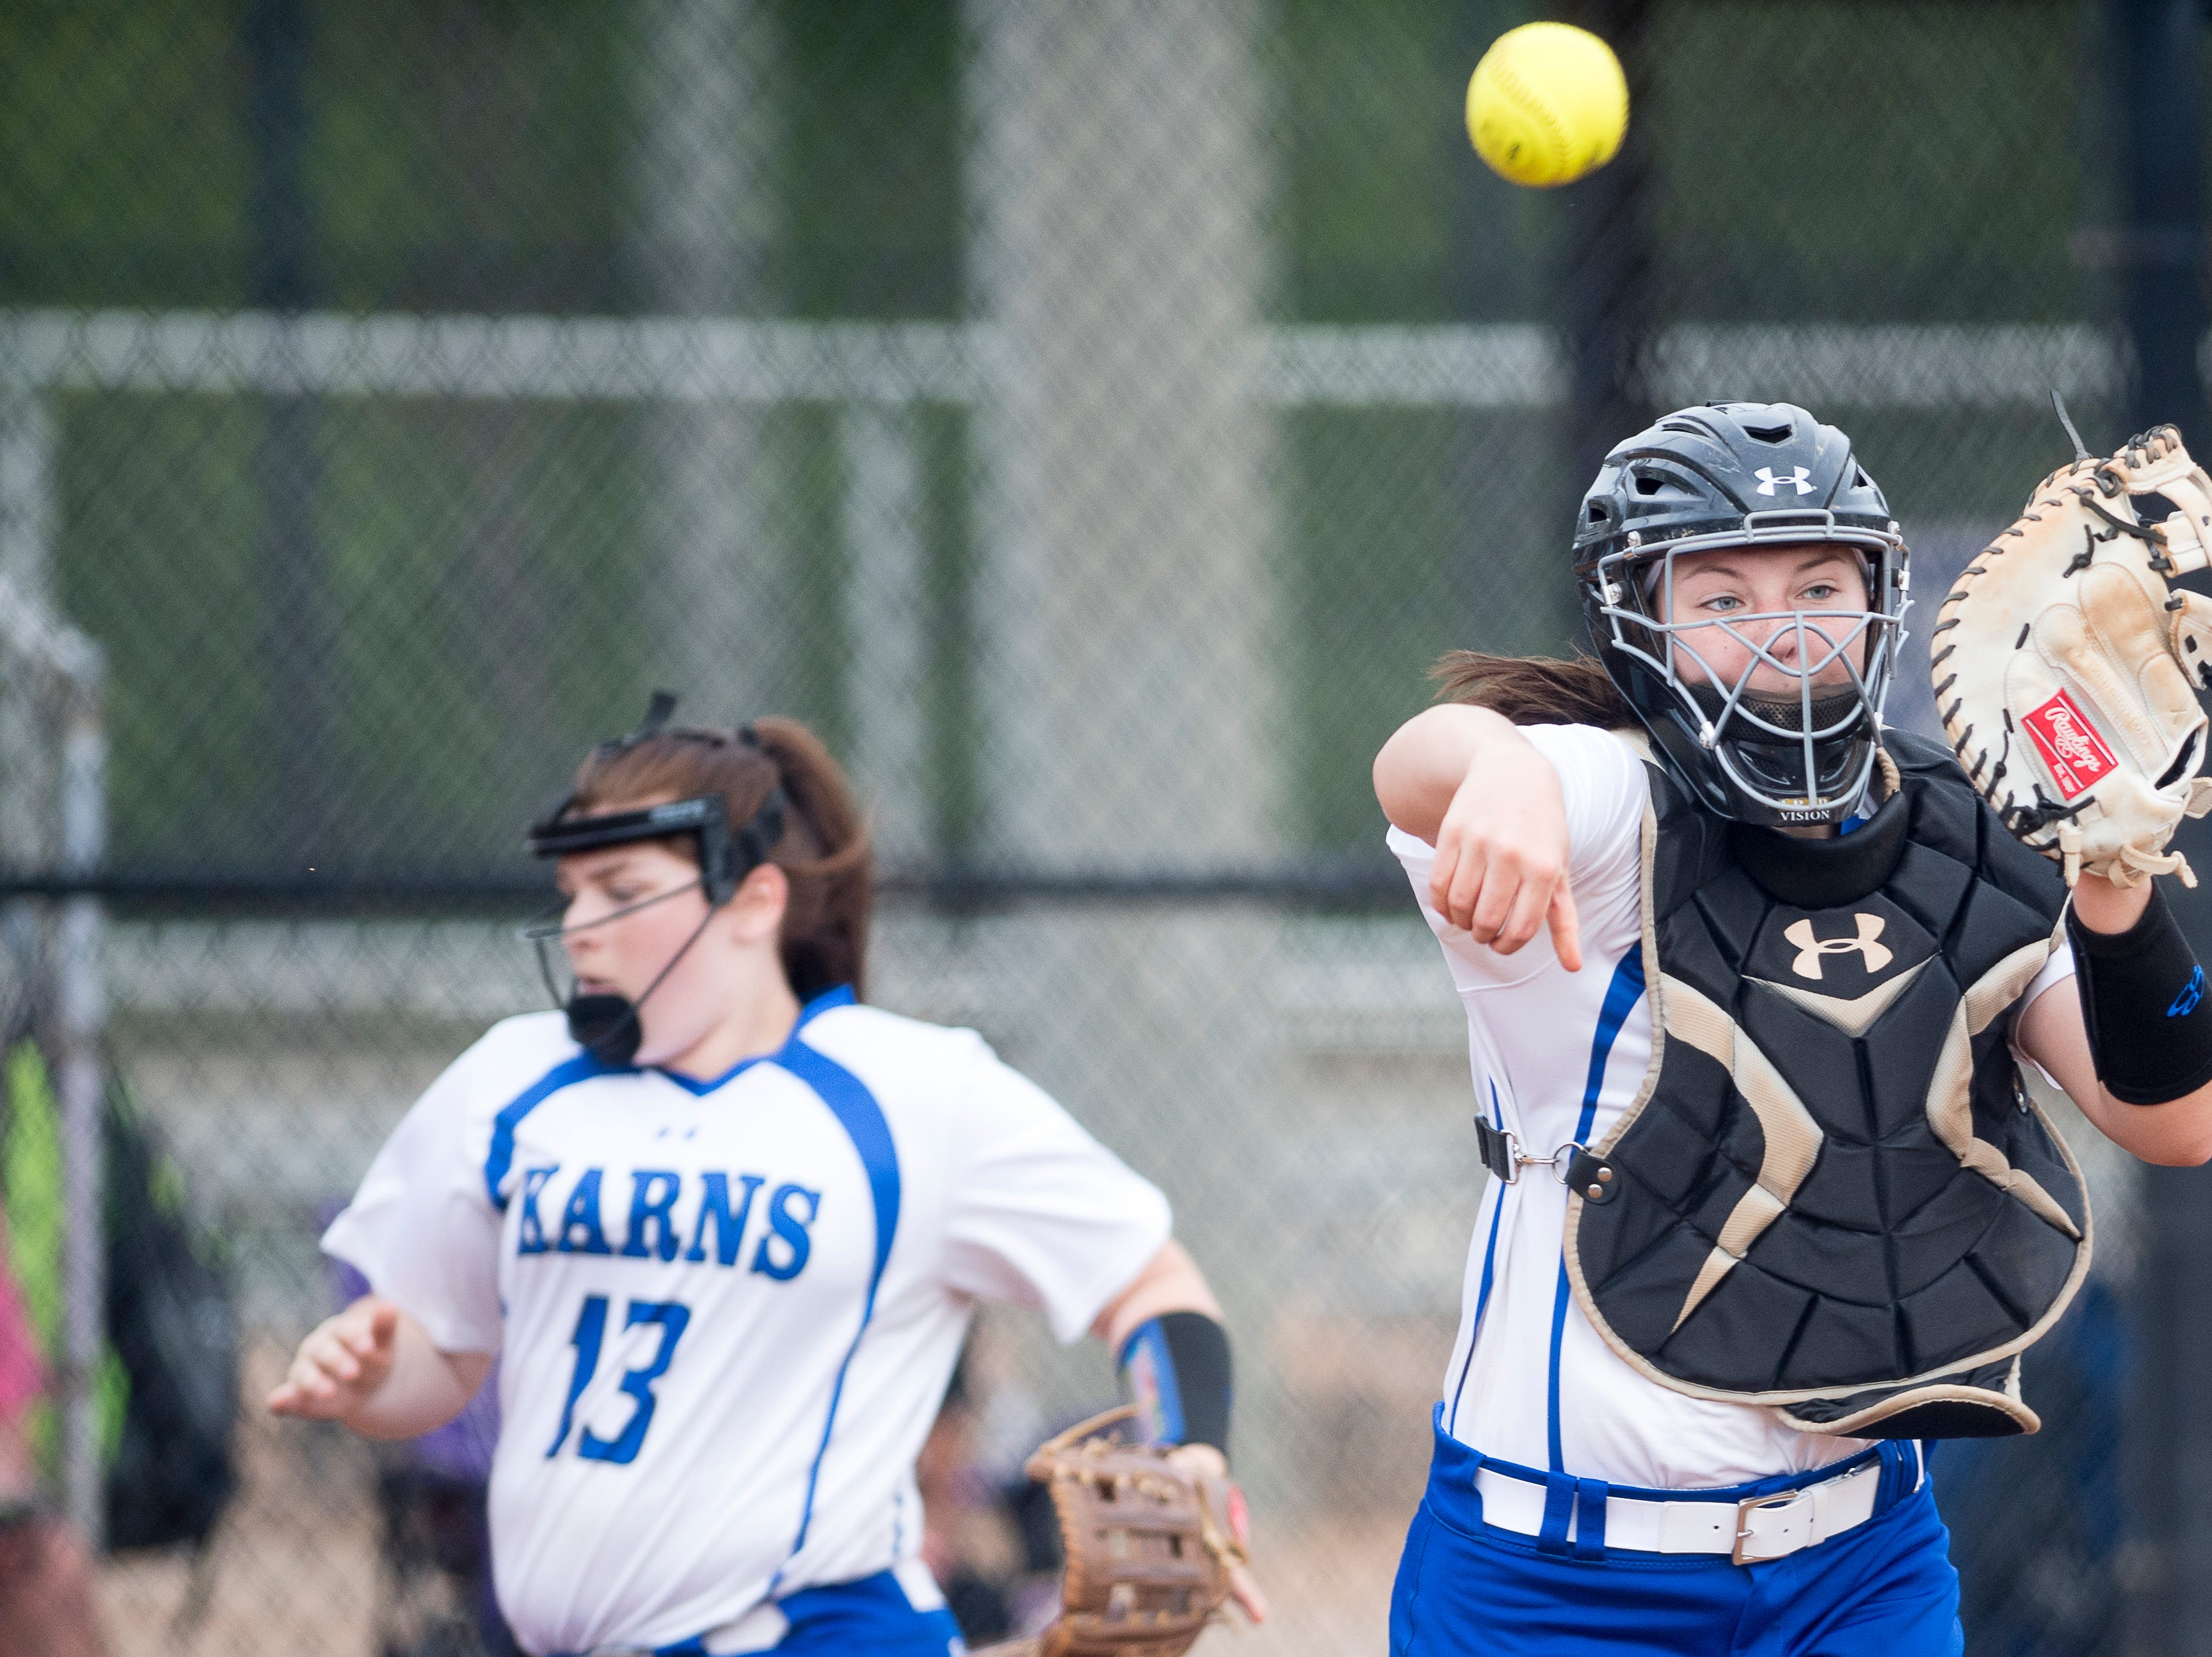 Karns' Lexie Baker (00) throws the ball to first during a softball game between Catholic and Karns at Caswell Park in Knoxville, Tennessee on Friday, April 12, 2019.